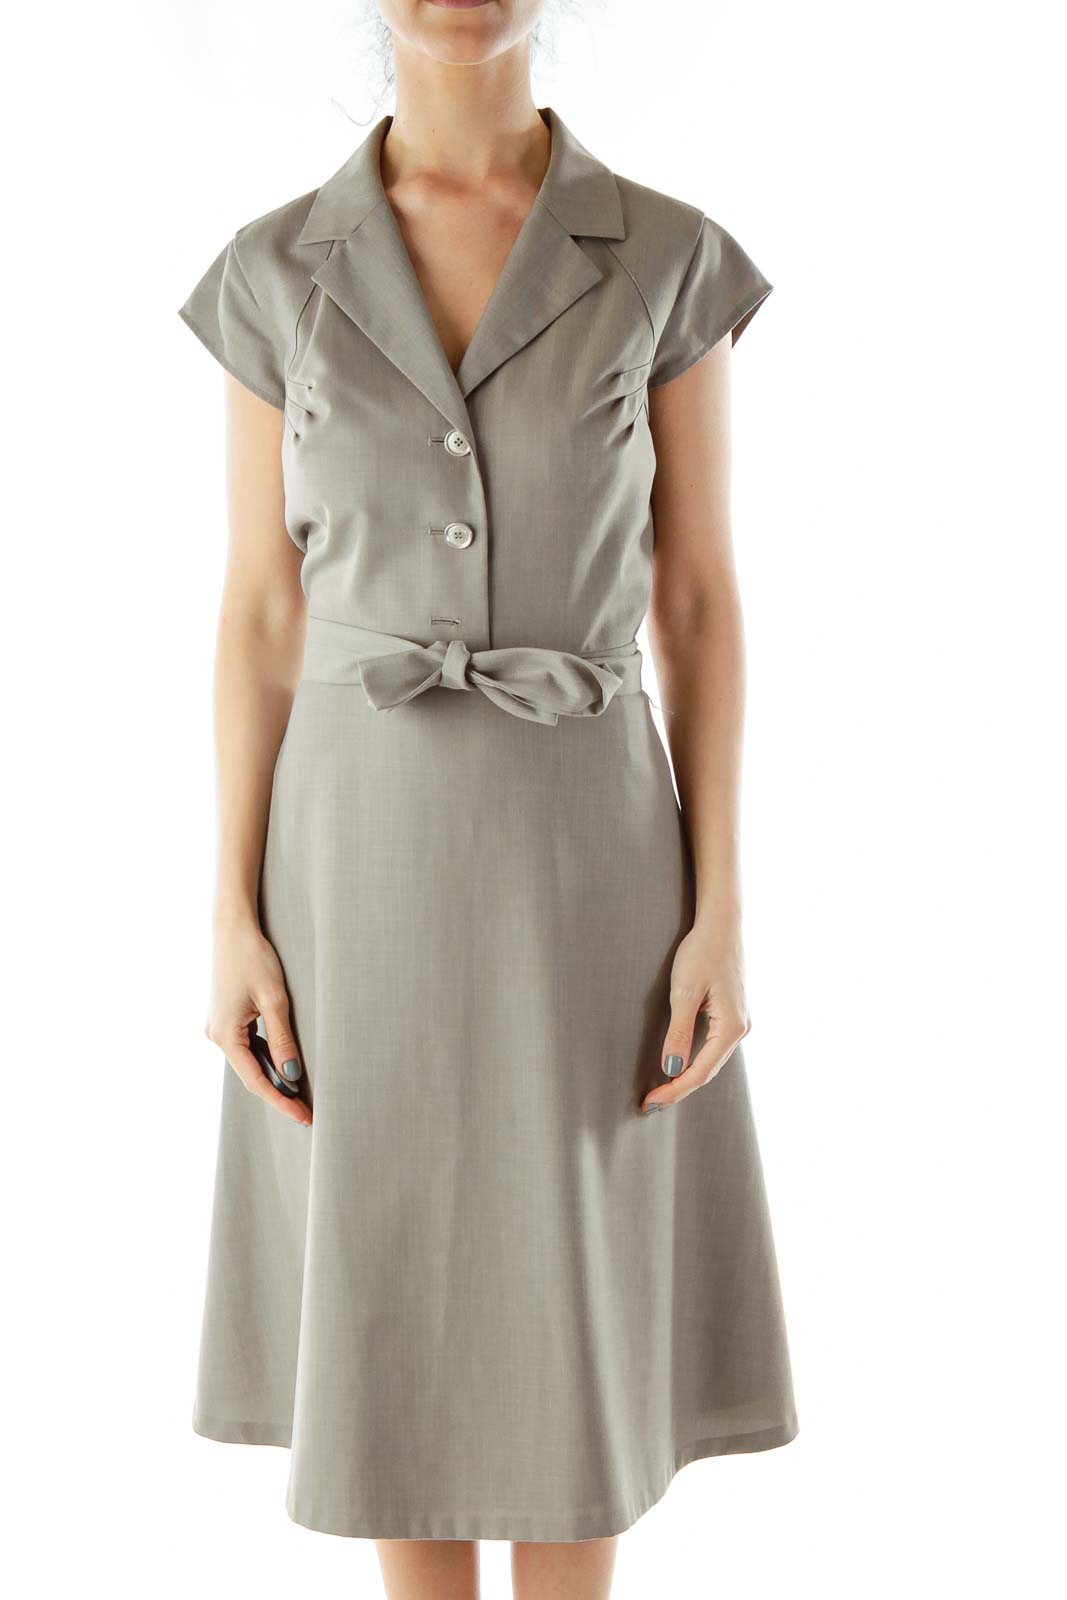 Gray Collared Work Dress